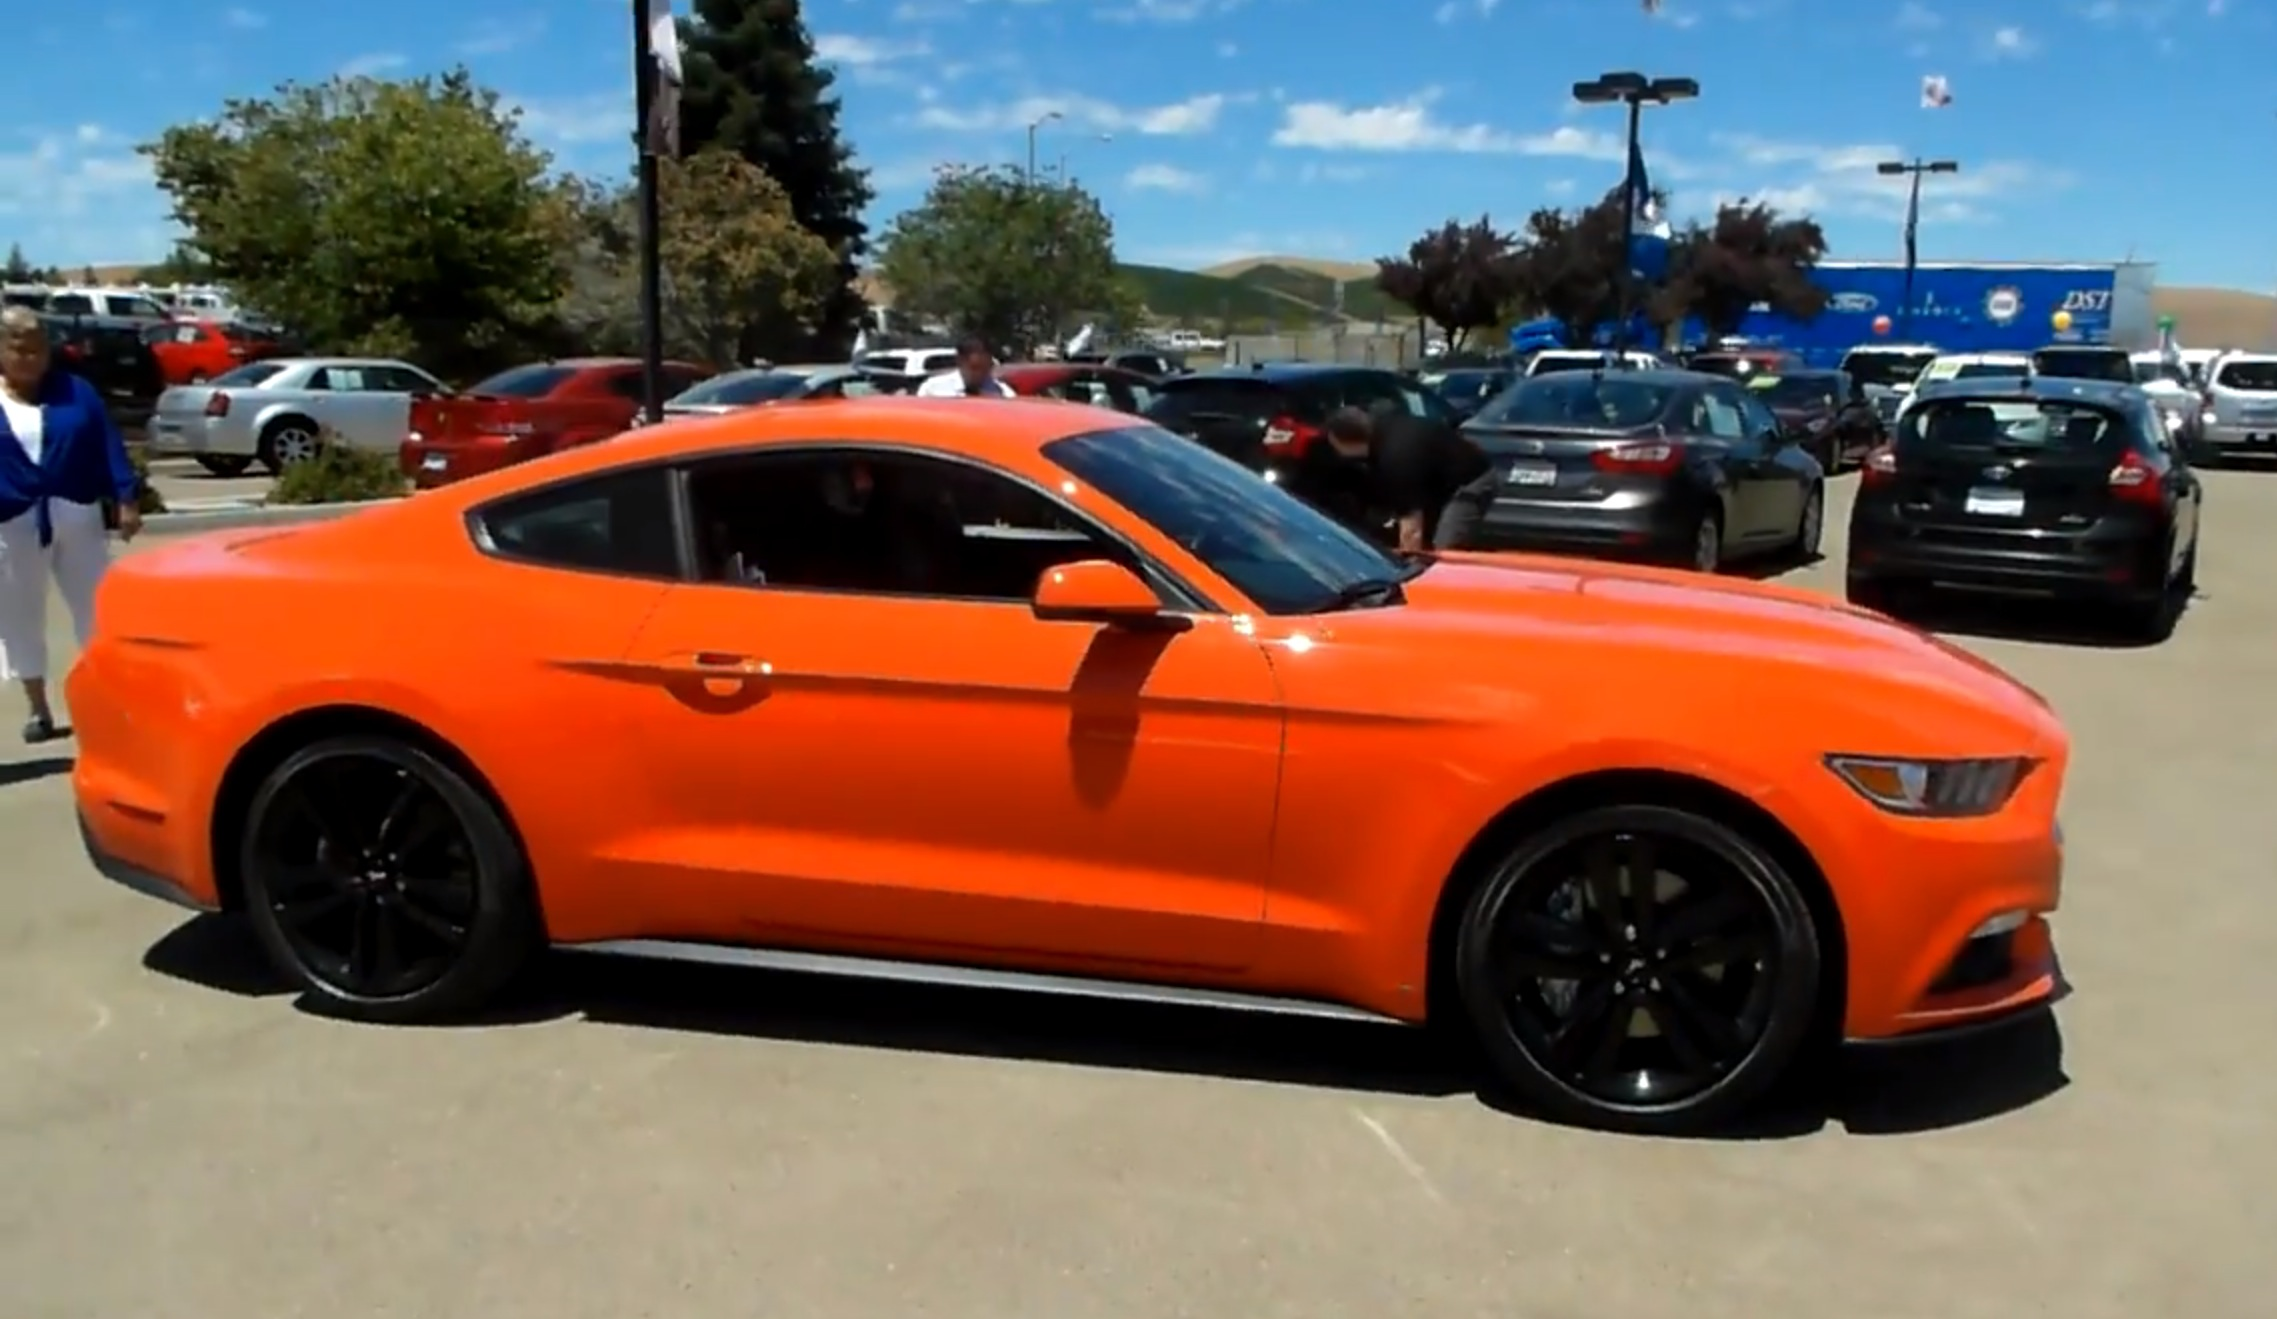 competition orange 2015 mustang arrives at livemore ford for sneak peek 2015 mustang forum. Black Bedroom Furniture Sets. Home Design Ideas